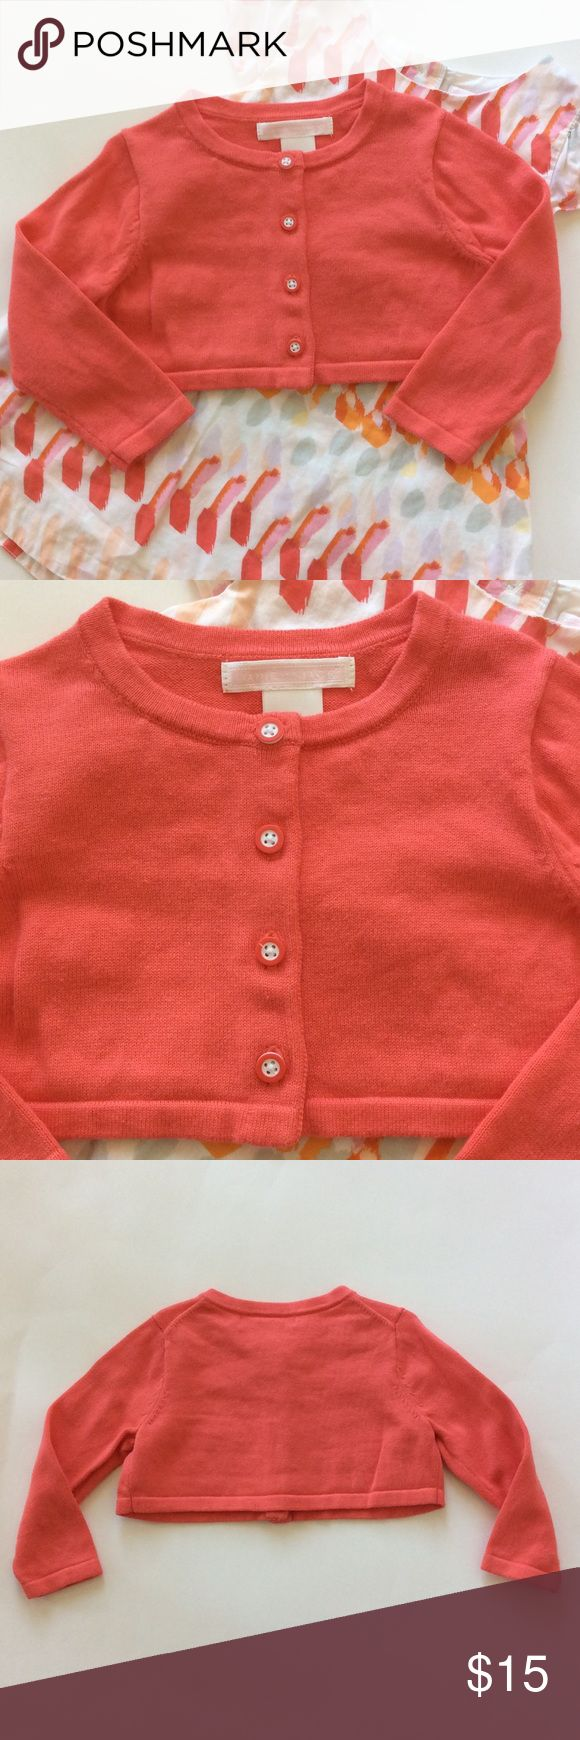 👫Janie and Jack cardigan sweater 👫Janie and Jack cardigan sweater. Gorgeous coral color. Button front. Long sleeves. 100% cotton. Size 12-18 mths. Excellent condition. Coordinates with JJ dress also listed in my closet. Janie and Jack Shirts & Tops Sweaters